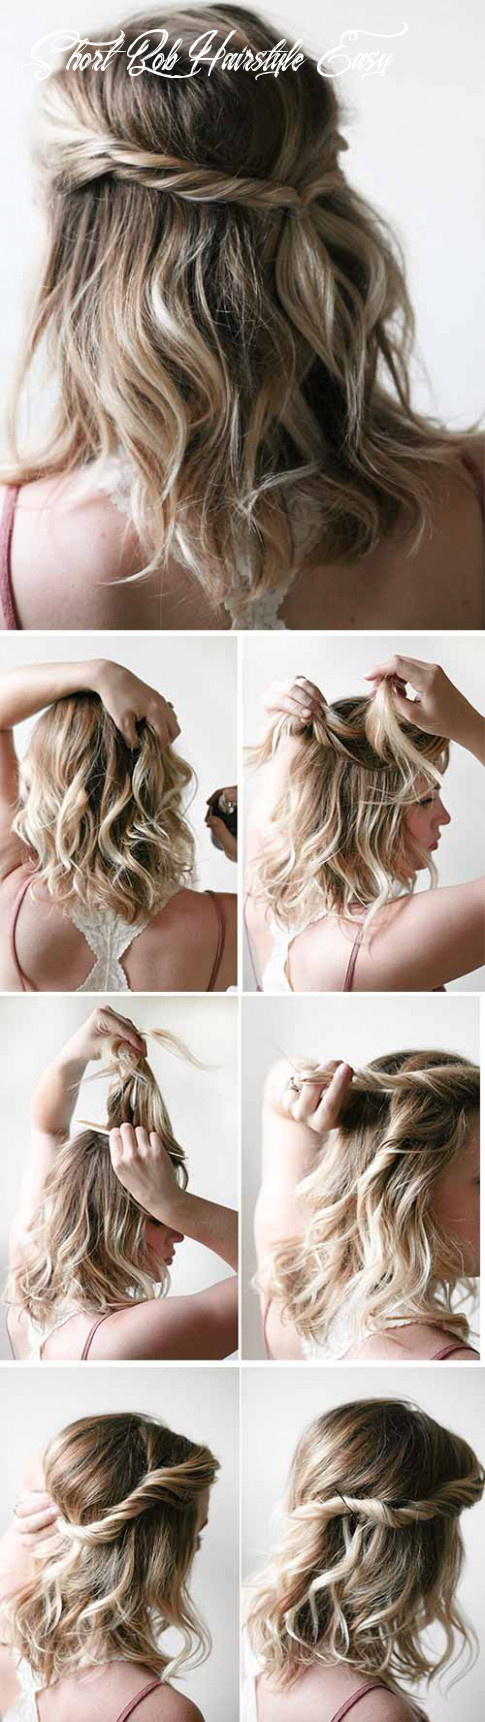 9 incredible diy short hairstyles a step by step guide short bob hairstyle easy